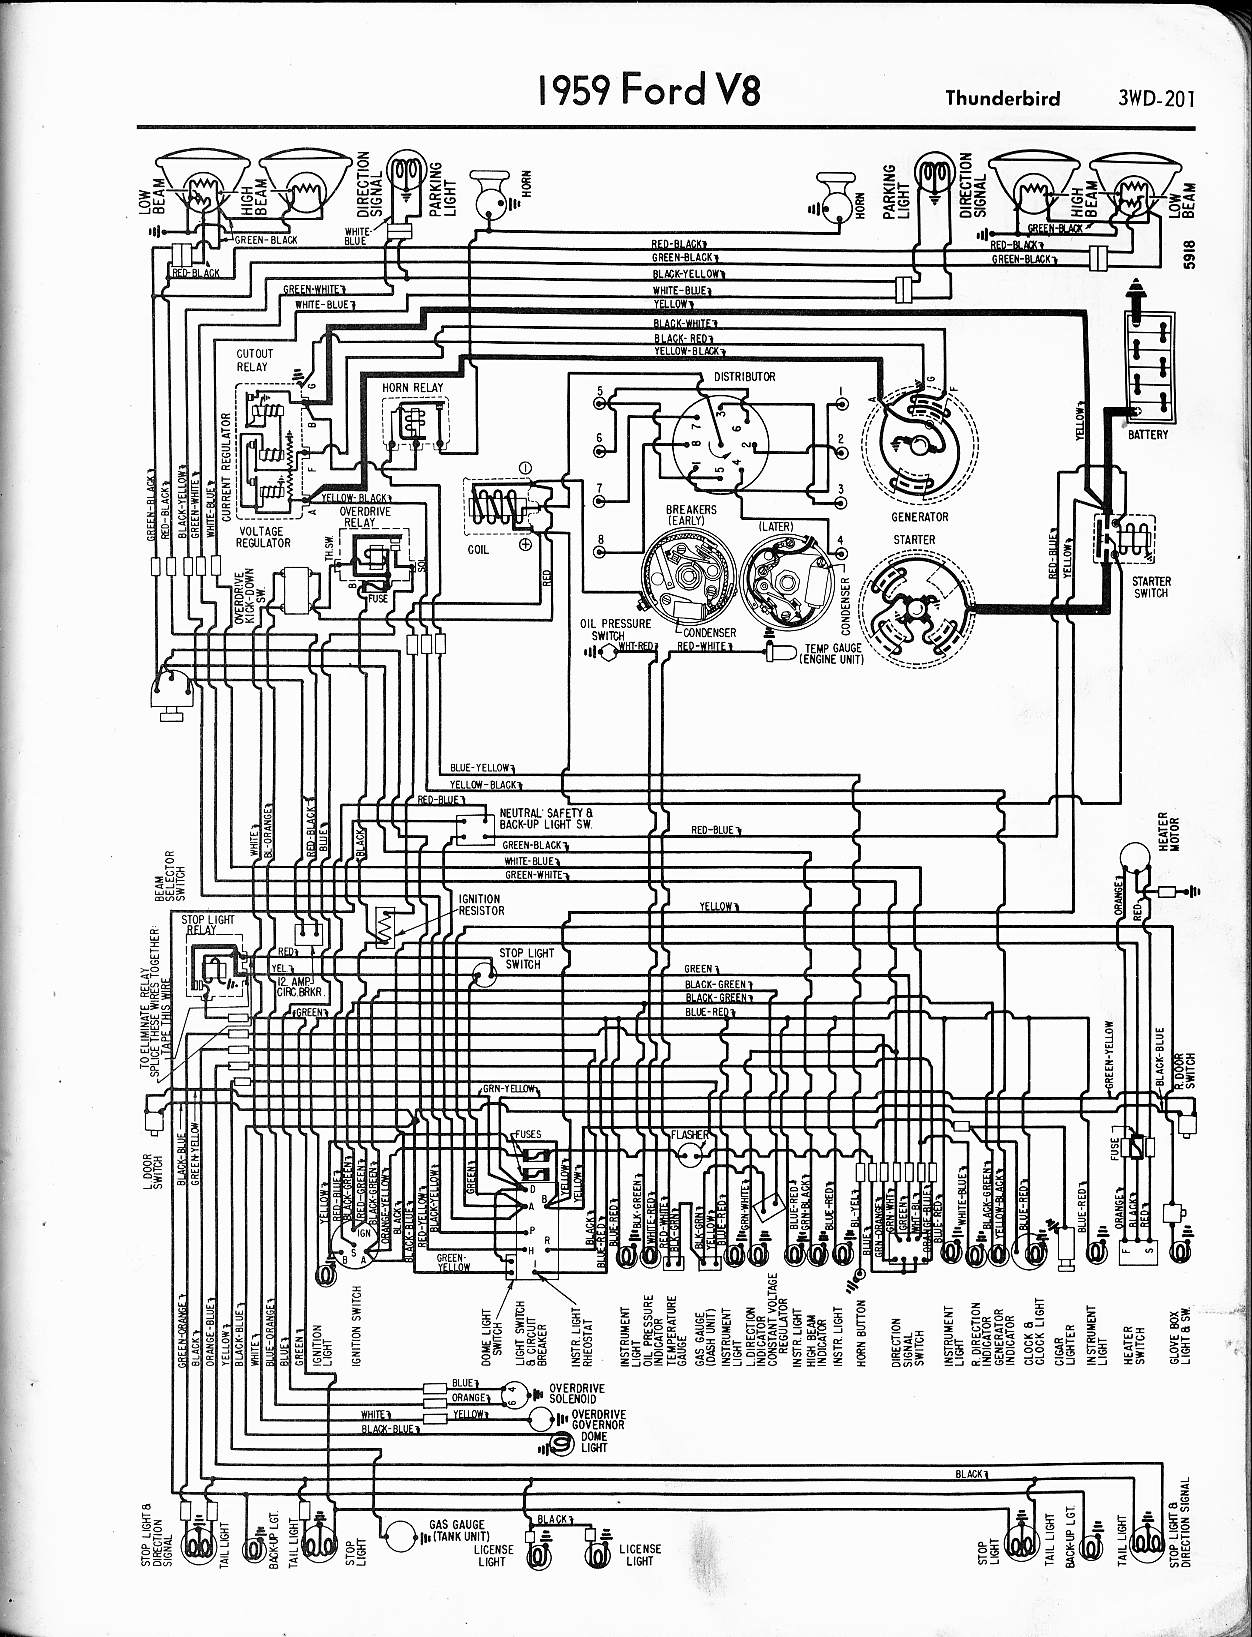 57 65 ford wiring diagrams 2002 Thunderbird Wiring Harness 2002 Thunderbird Wiring Harness #67 Wiring Harness Diagram